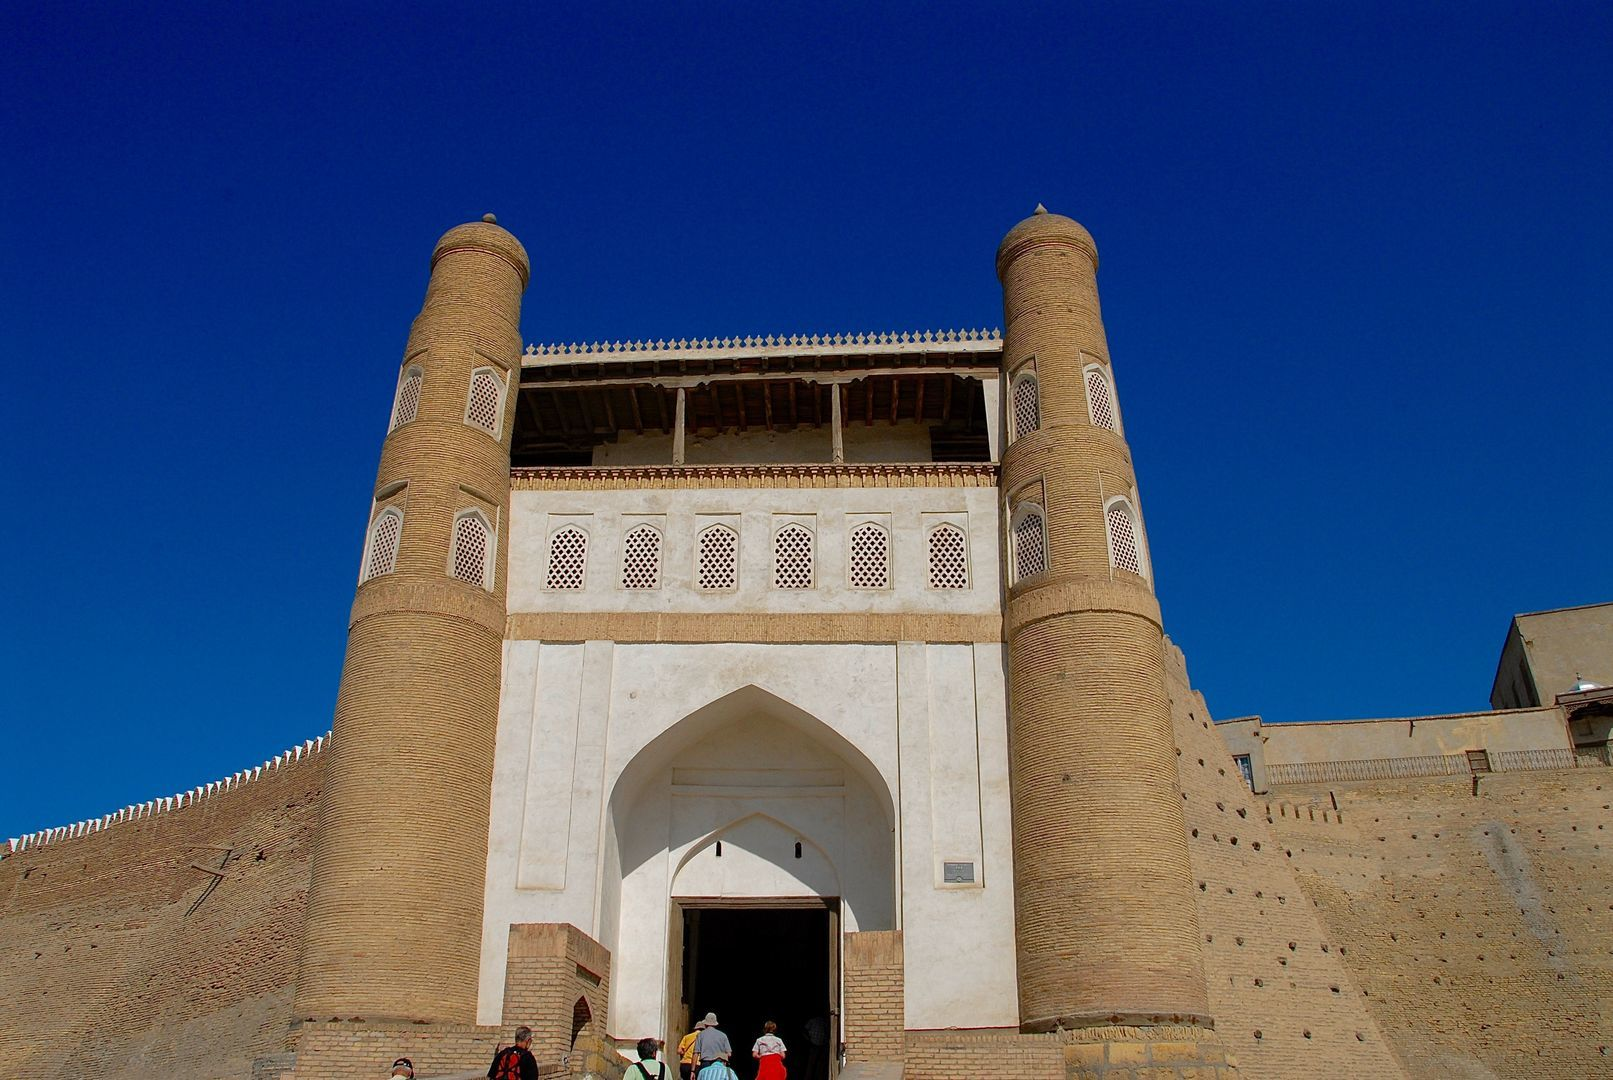 Bukhara Ark Fortress- huge entrance with two towers